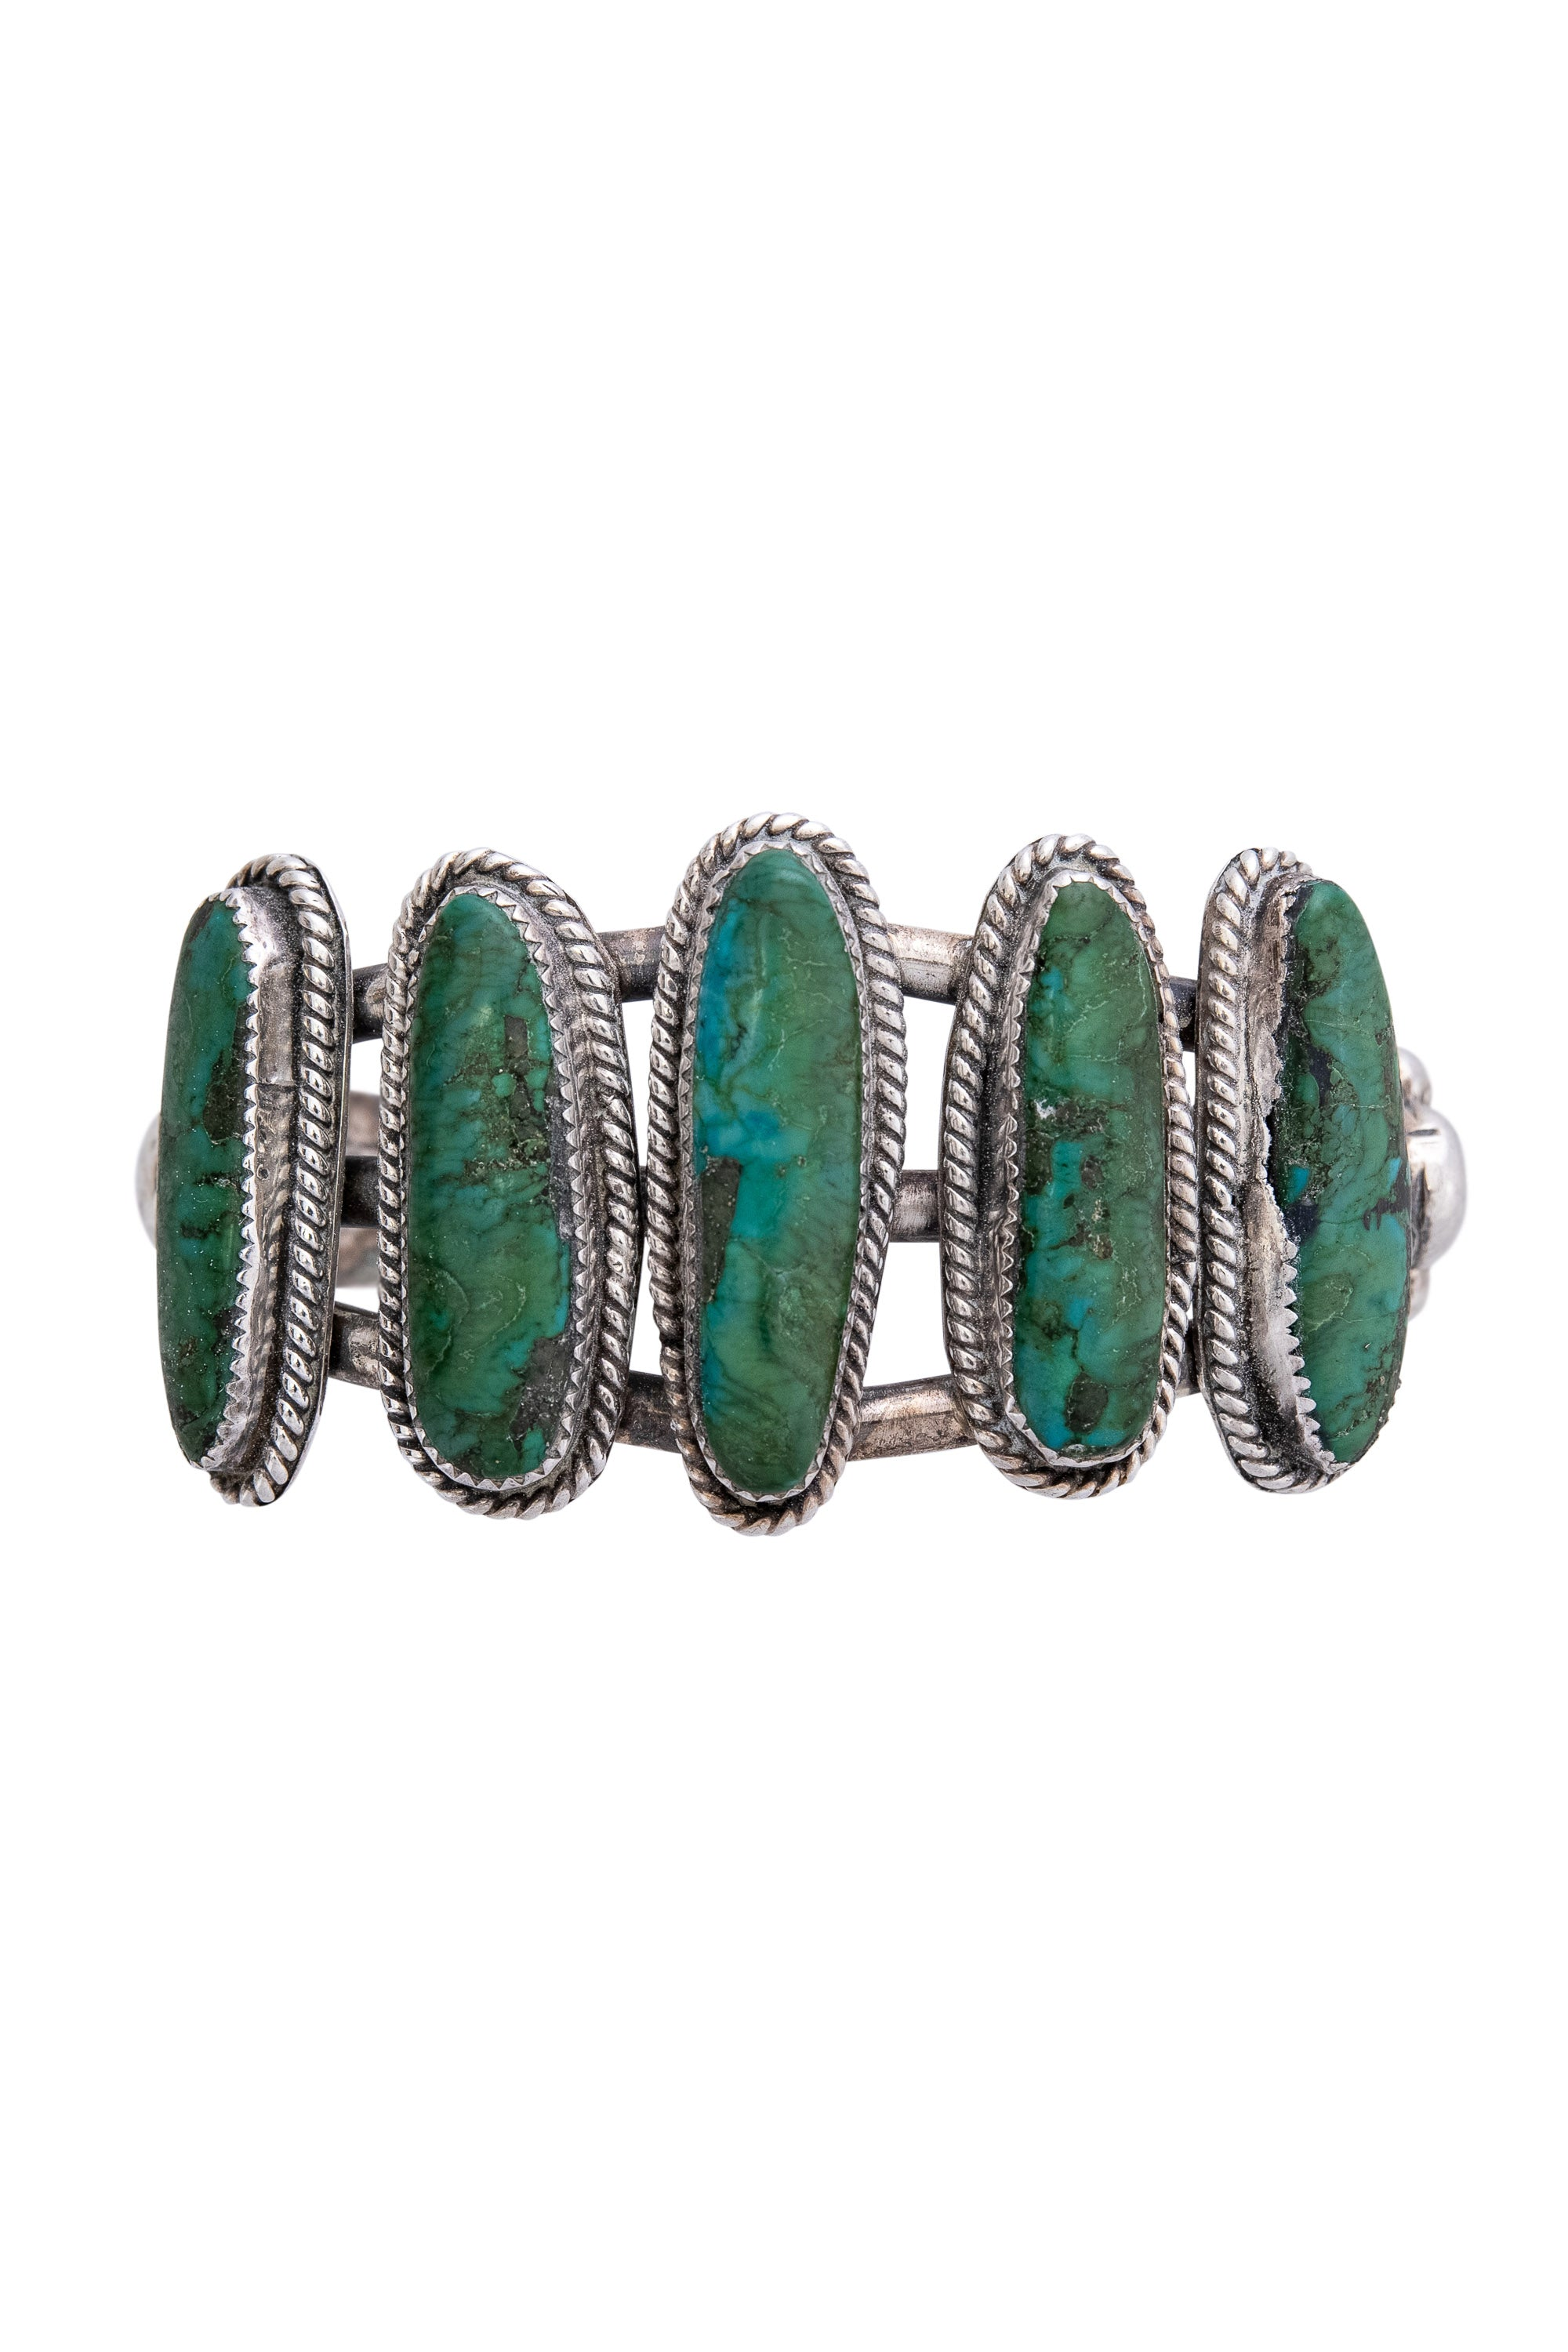 Cuff, Turquoise, 6 Stone, Vintage, 2715